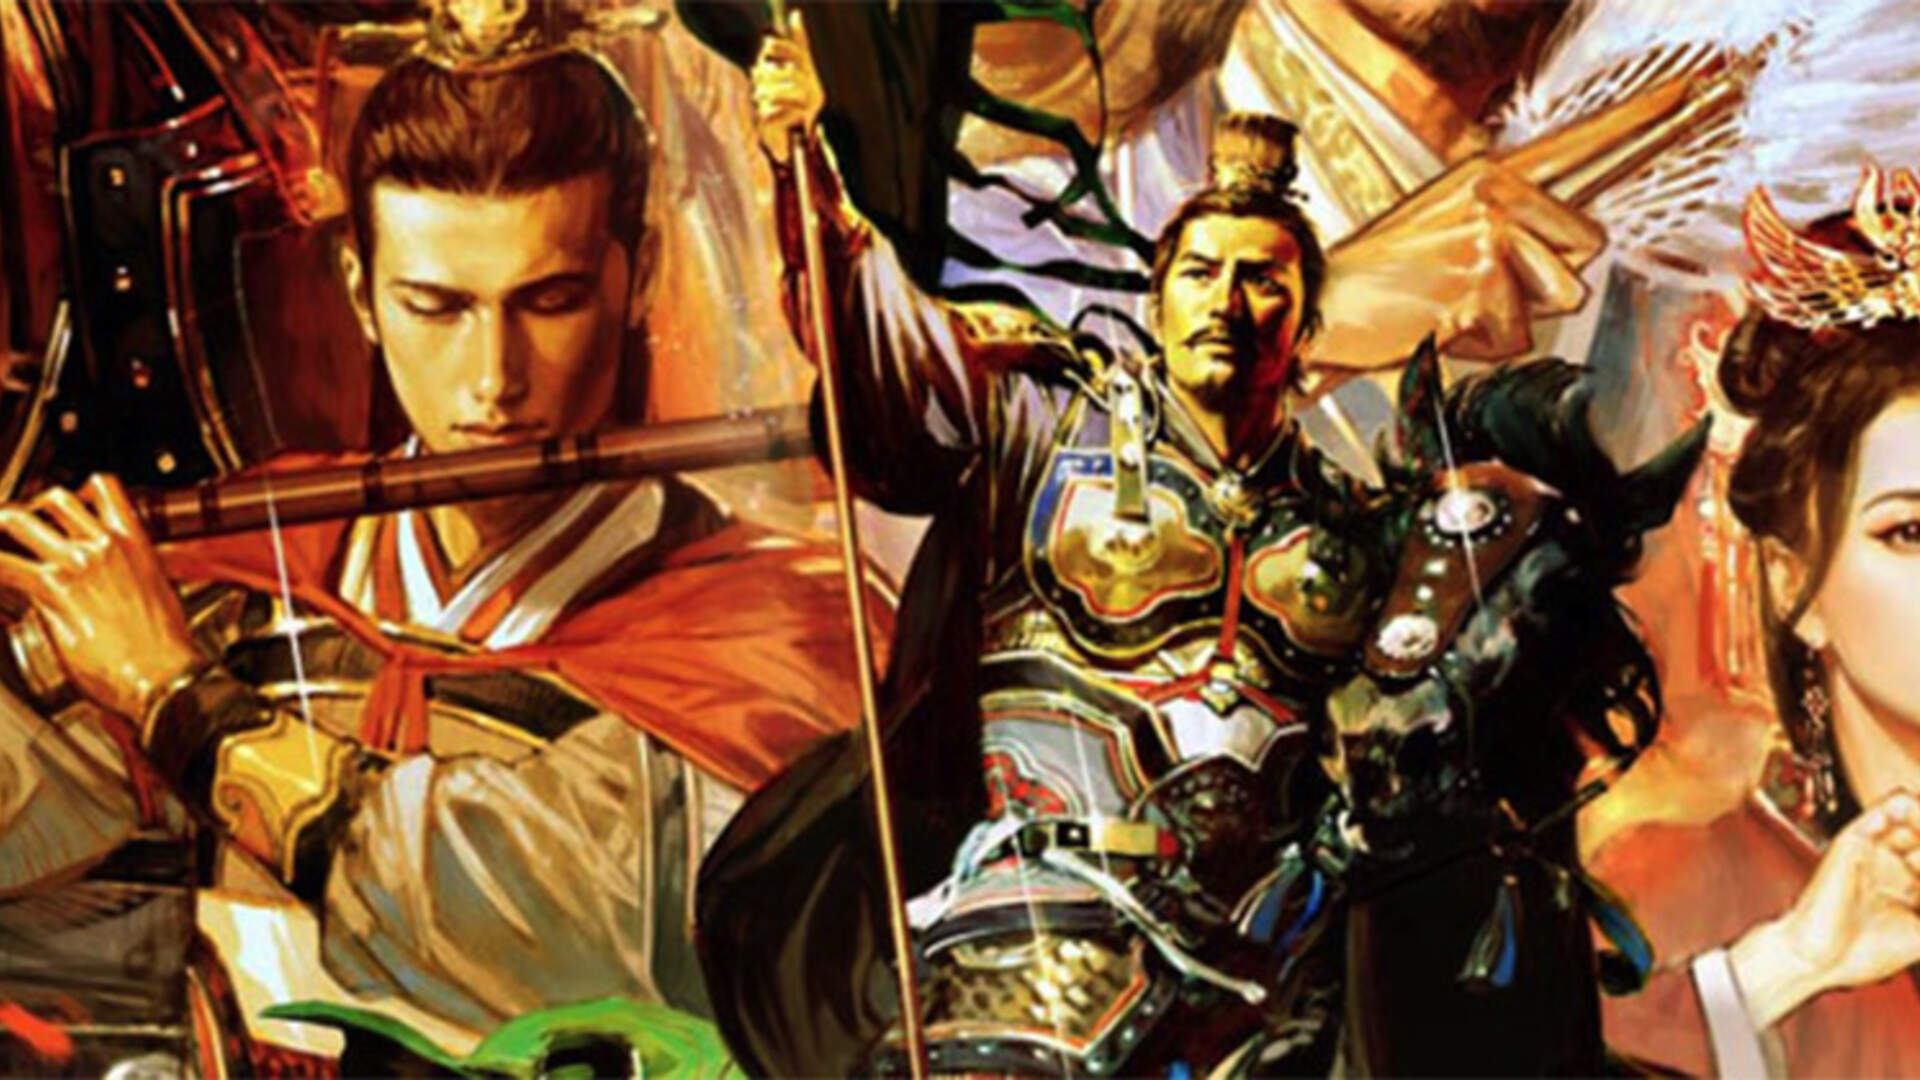 USstreamer: Get Your War on with Romance of the Three Kingdoms XIII [Now Archived on YouTube!]